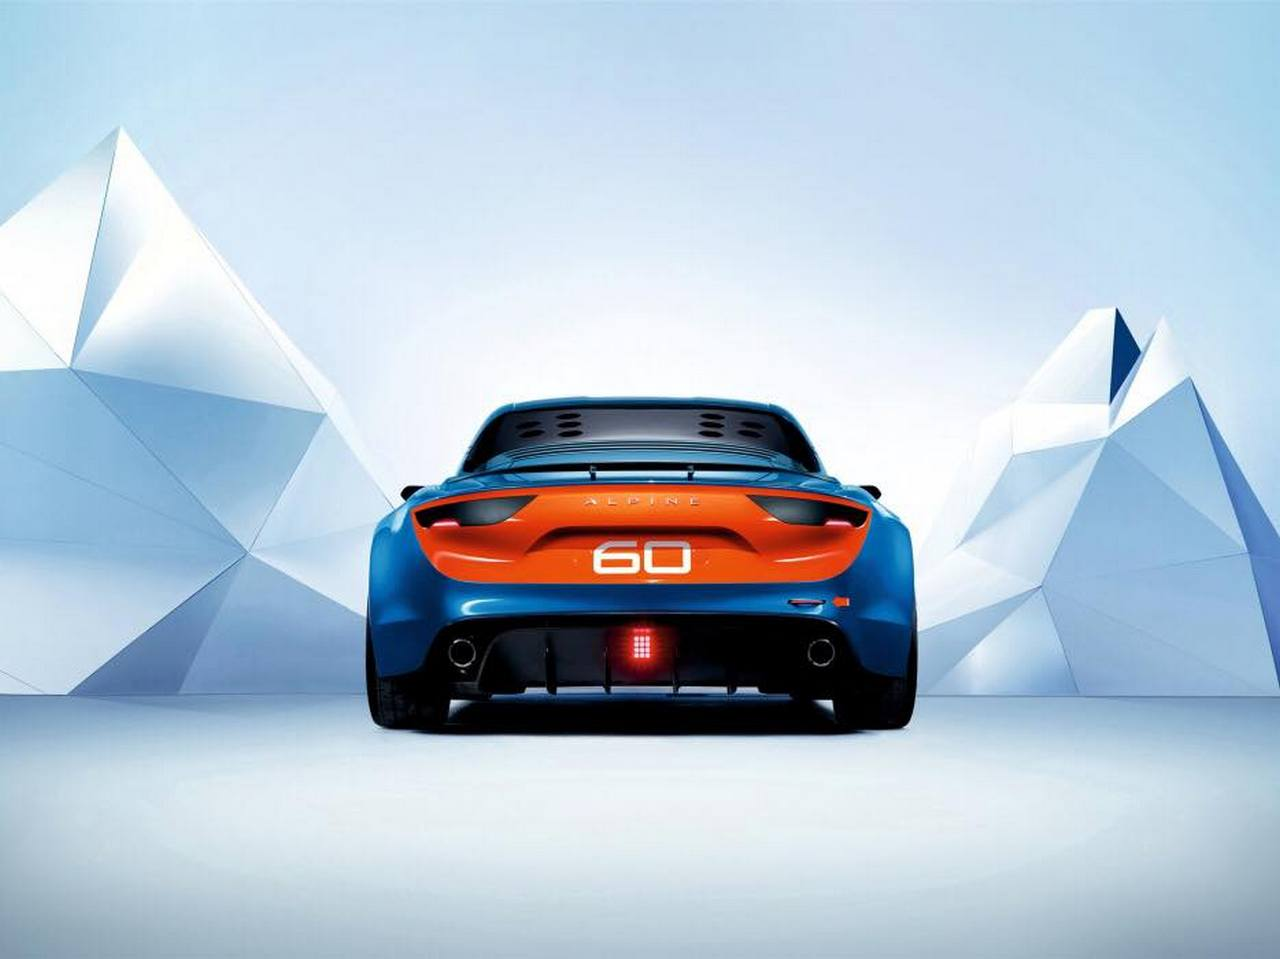 renault-alpine-celebration-concept_0-100-10